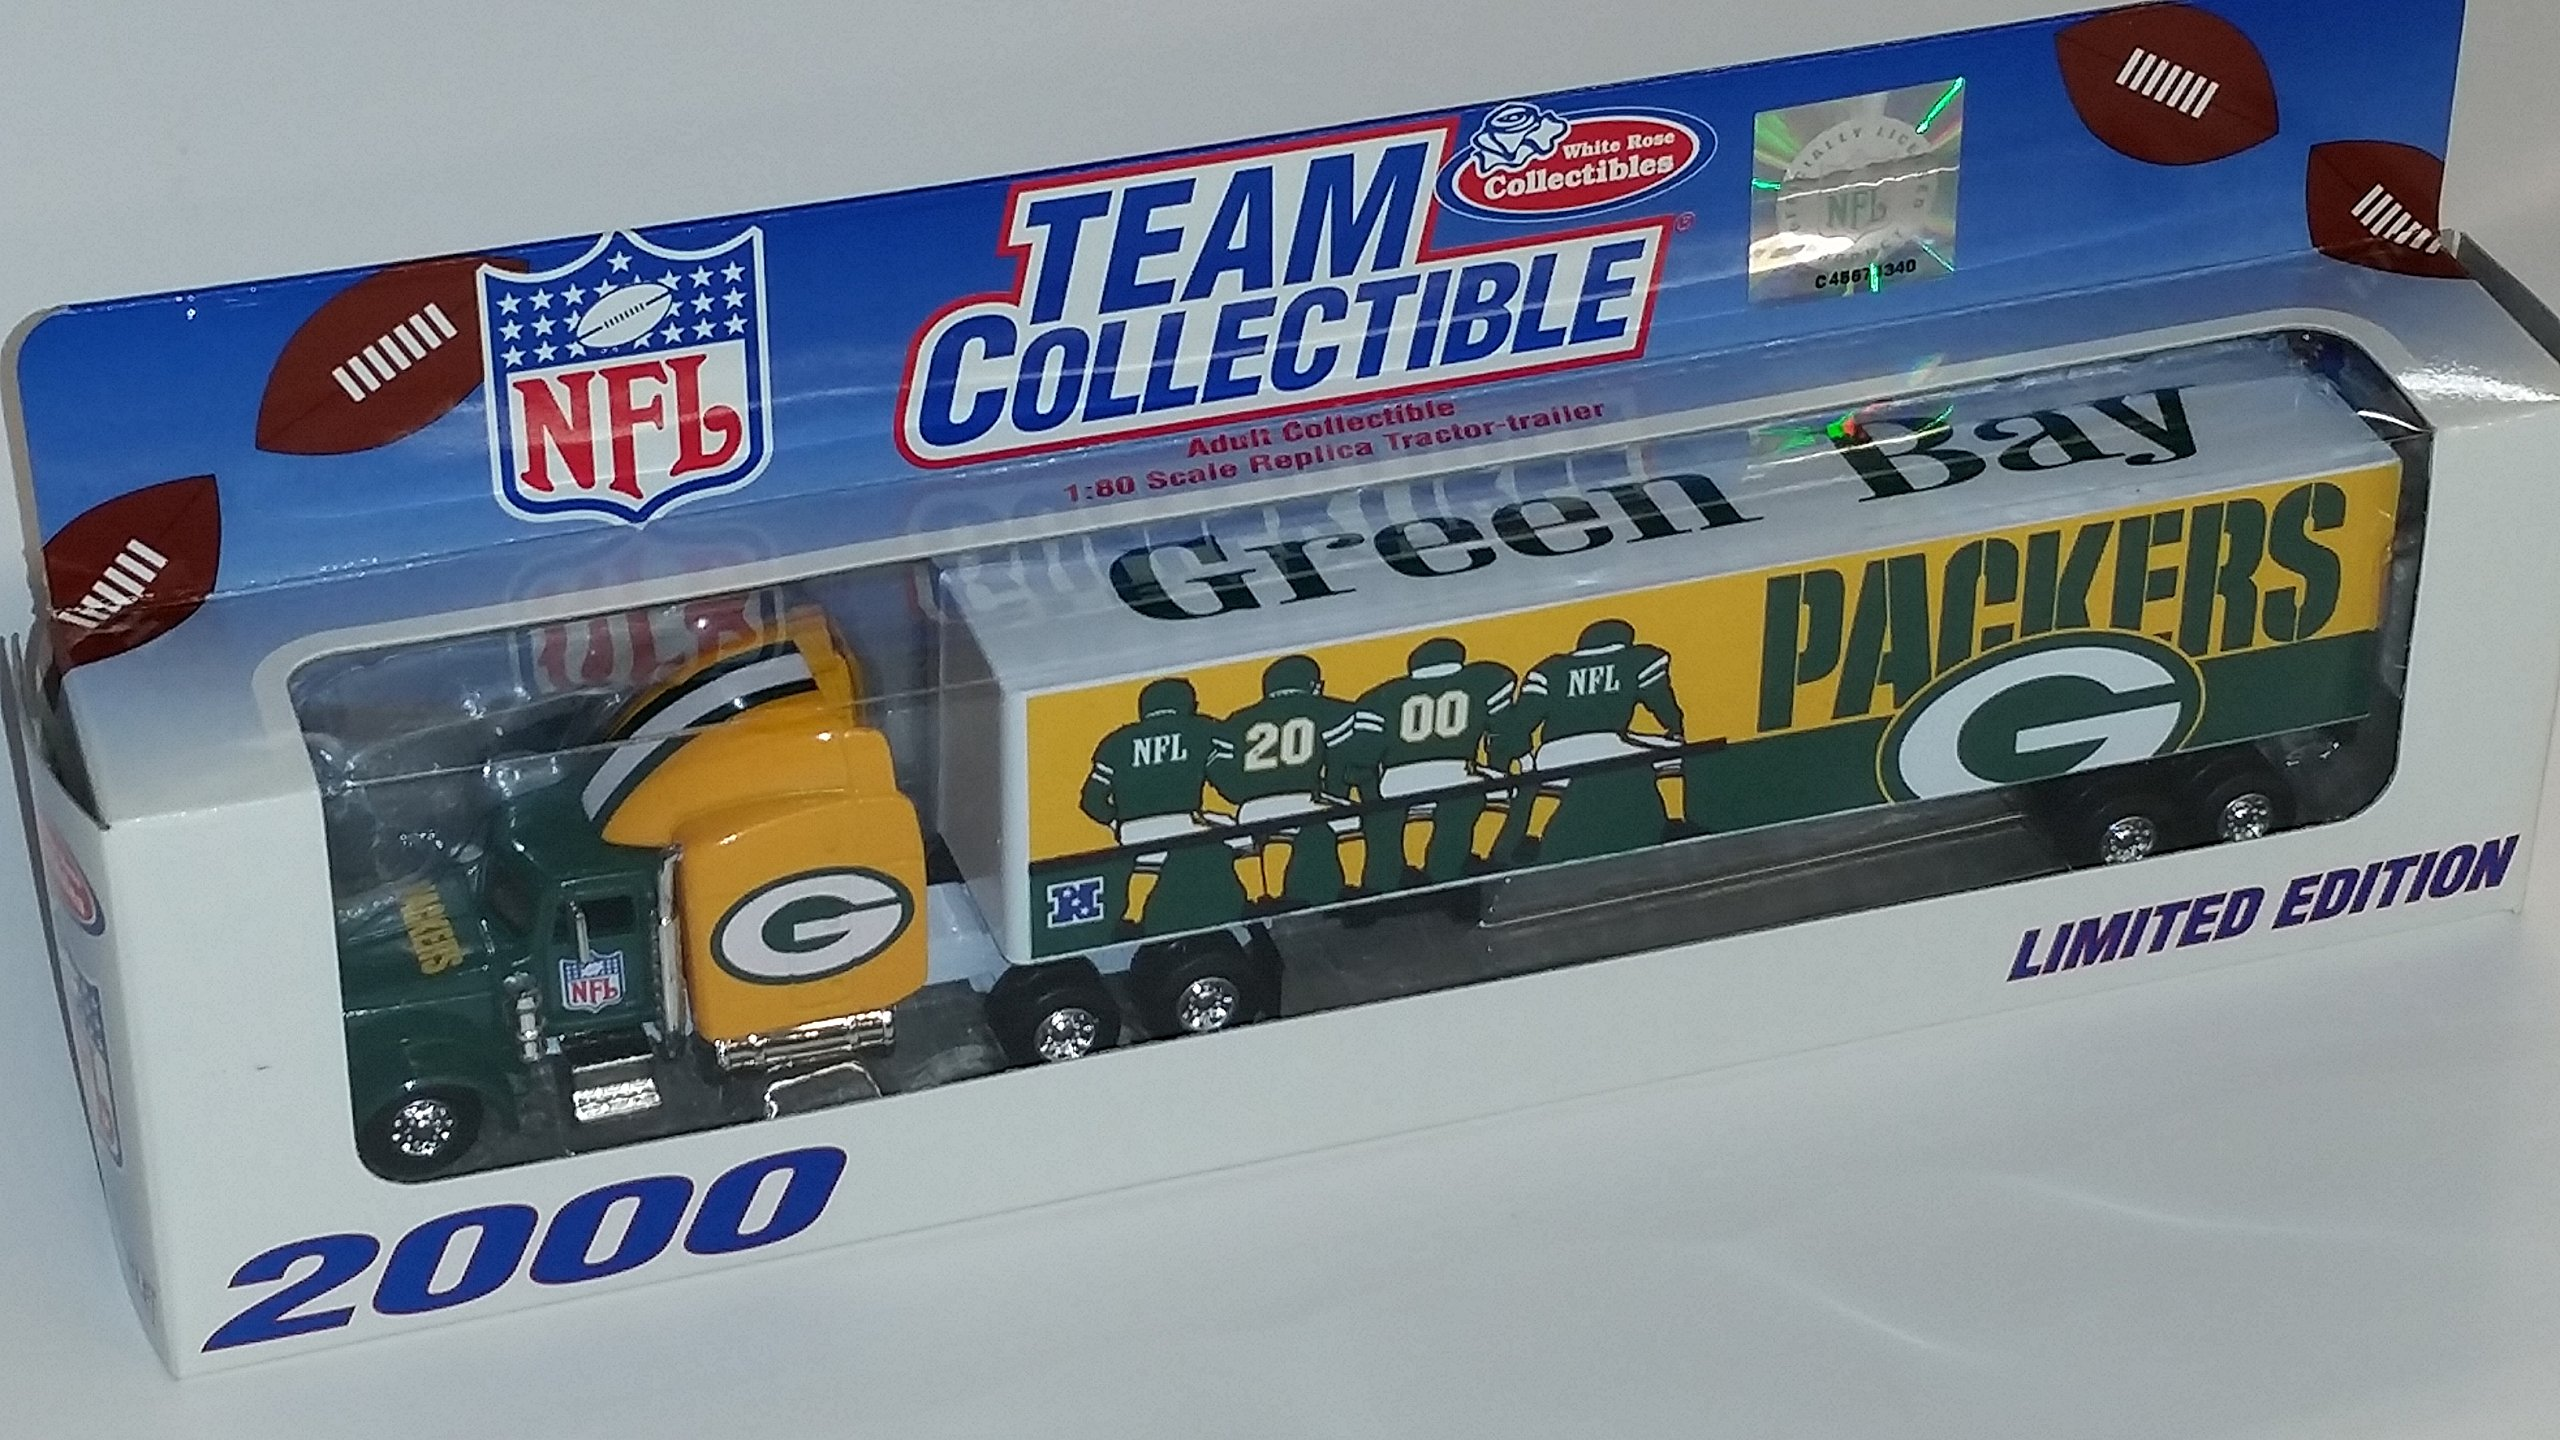 Green Bay Packers 2000 NFL Limited Edition Die Cast 1:80 Tractor Trailer Semi Truck Collectible